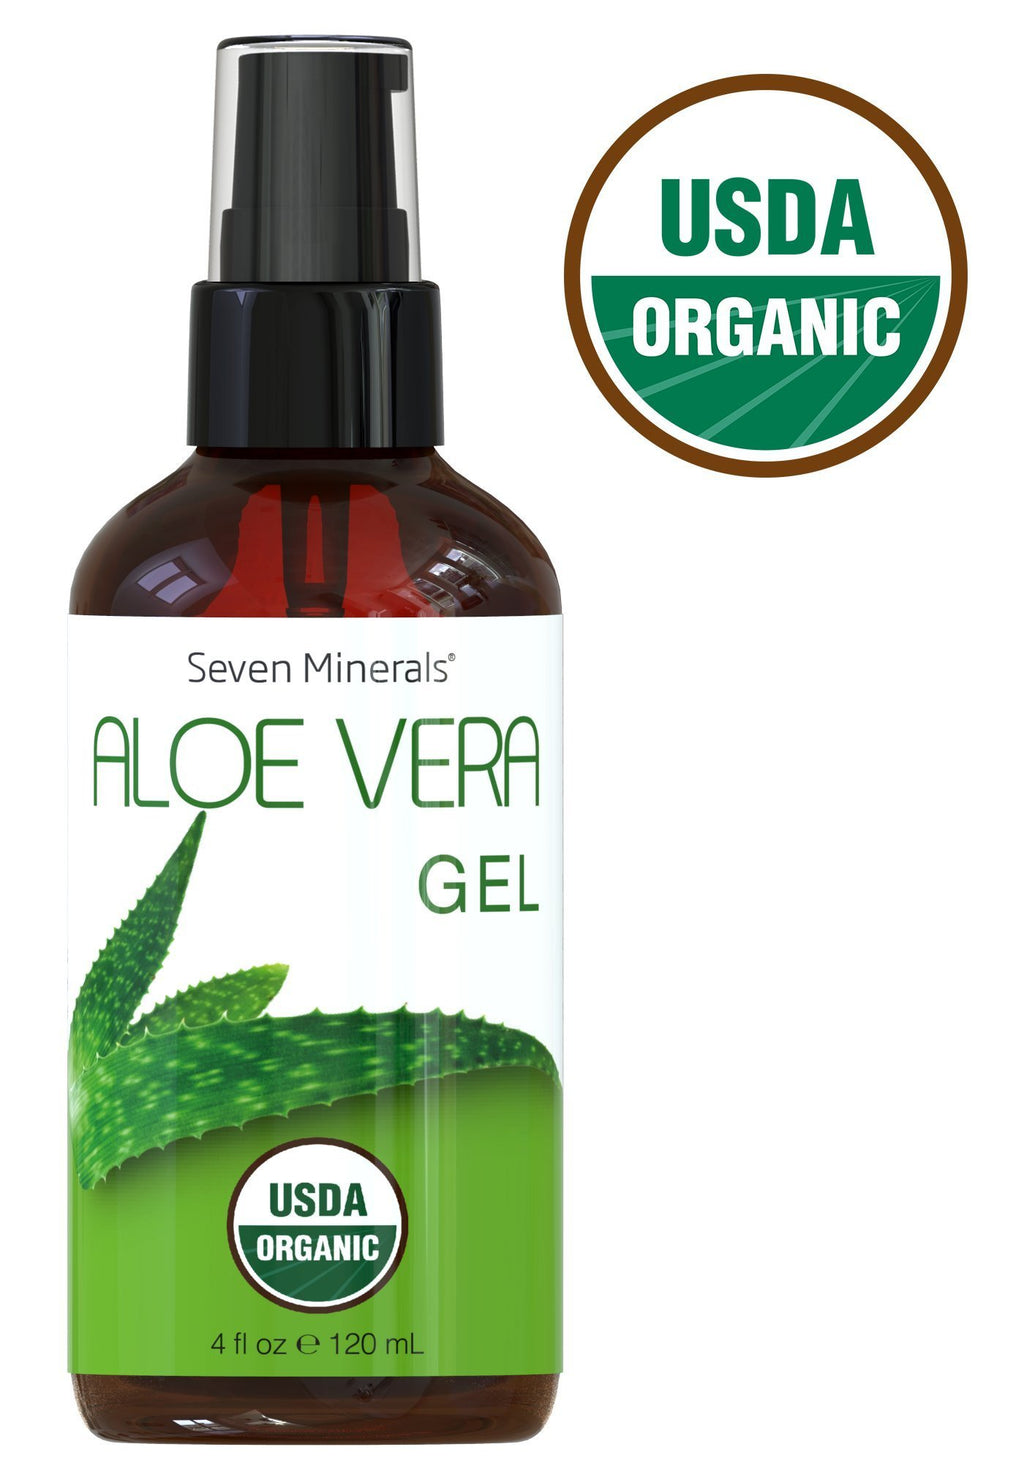 #1 USDA Organic Aloe Vera Gel – No Preservatives, No Alcohol – From Freshly Cut USA Grown 100% Pure Aloe Vera - With No Harmful Ingredients, Free of GMOs – For Healthy Skin, Face & Hair (4 fl oz) 4 Ounce USDA gel 4 oz USDA gel